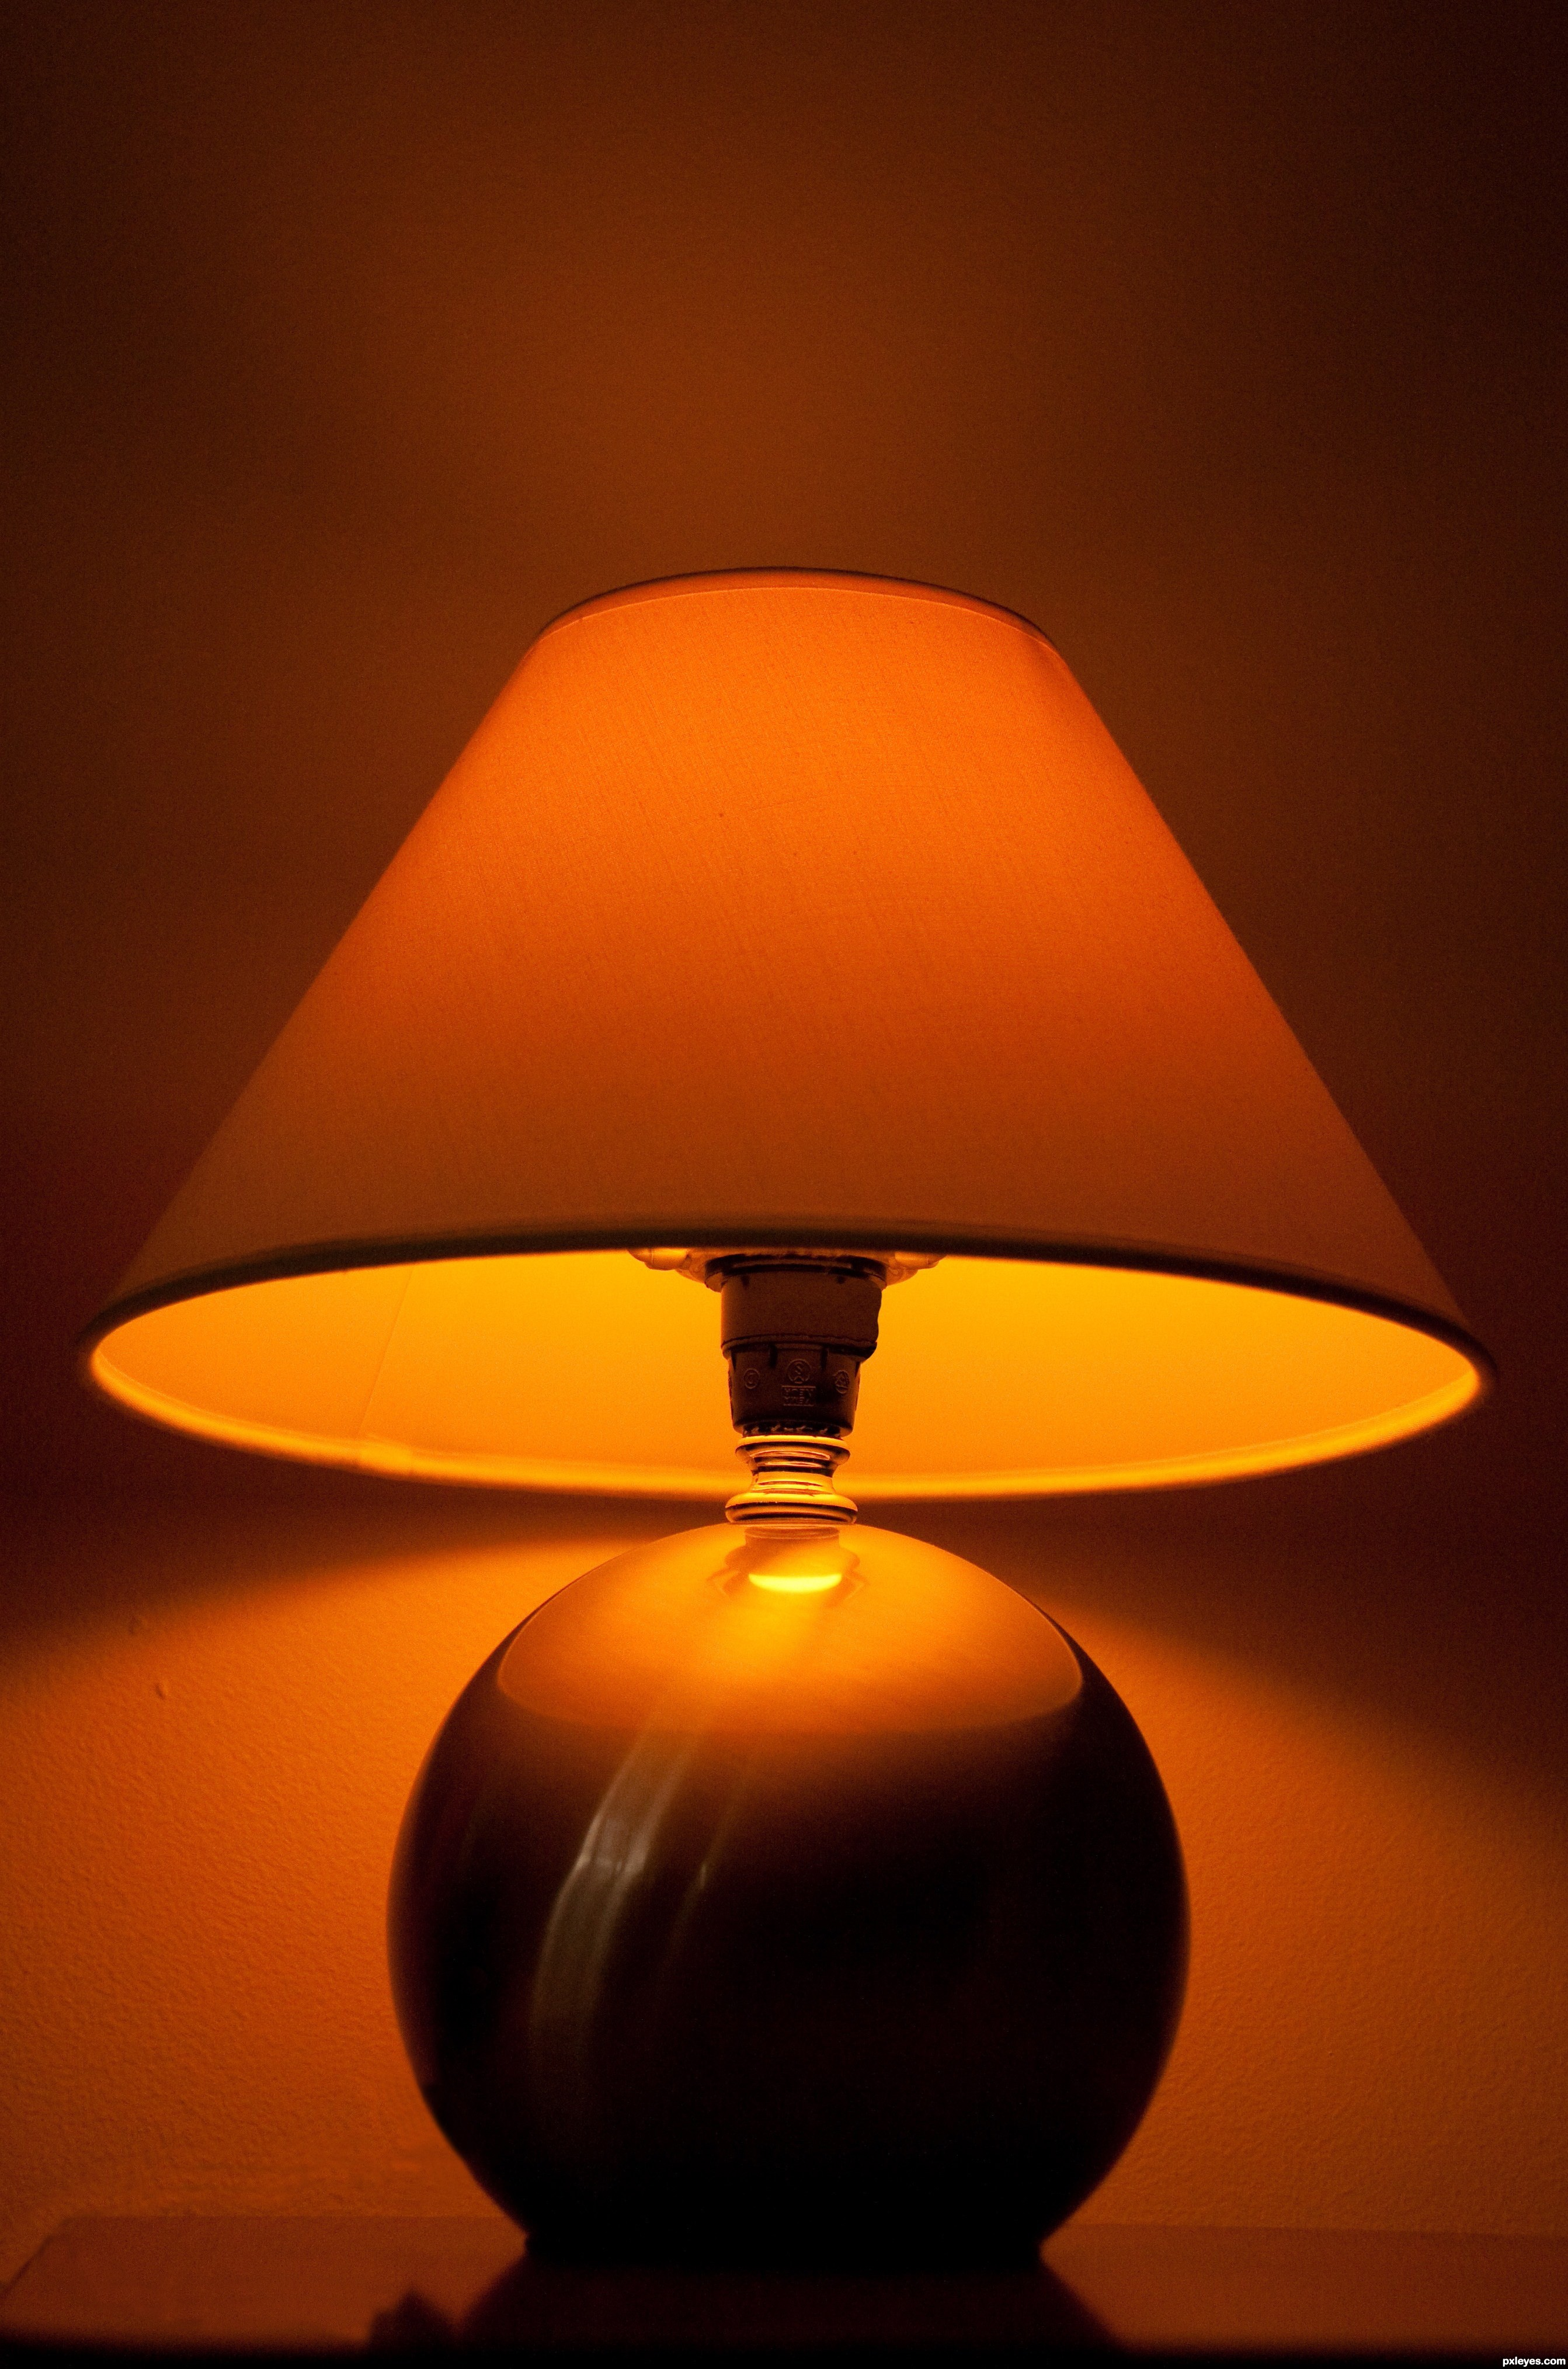 Night Lamp Picture By Bartoszwozniak For Night Lights Photography Contest